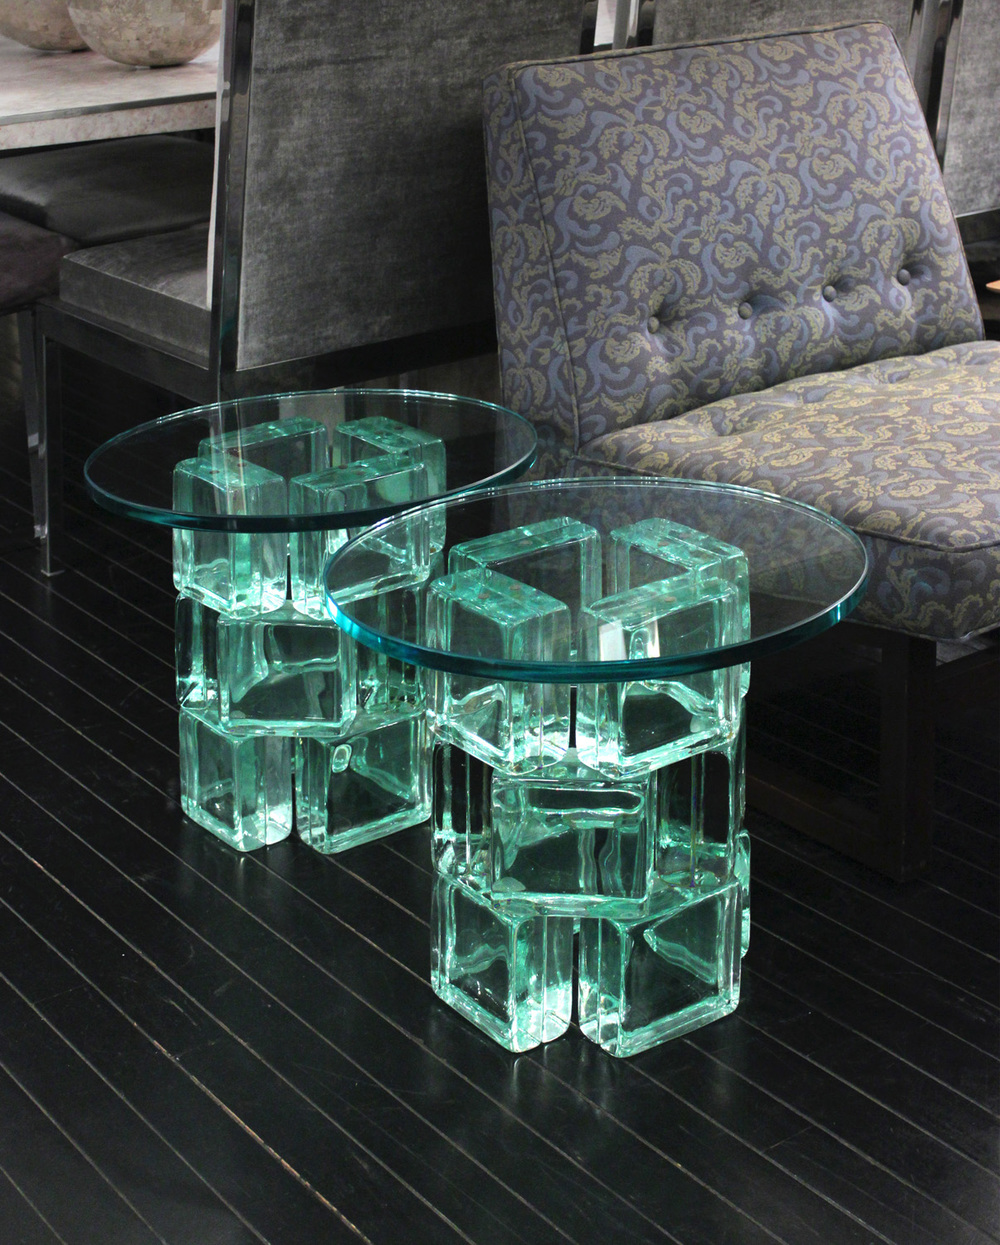 Beau 80s 45 IE Rnd Glass Block Occasionaltable137 Detail4 Hires